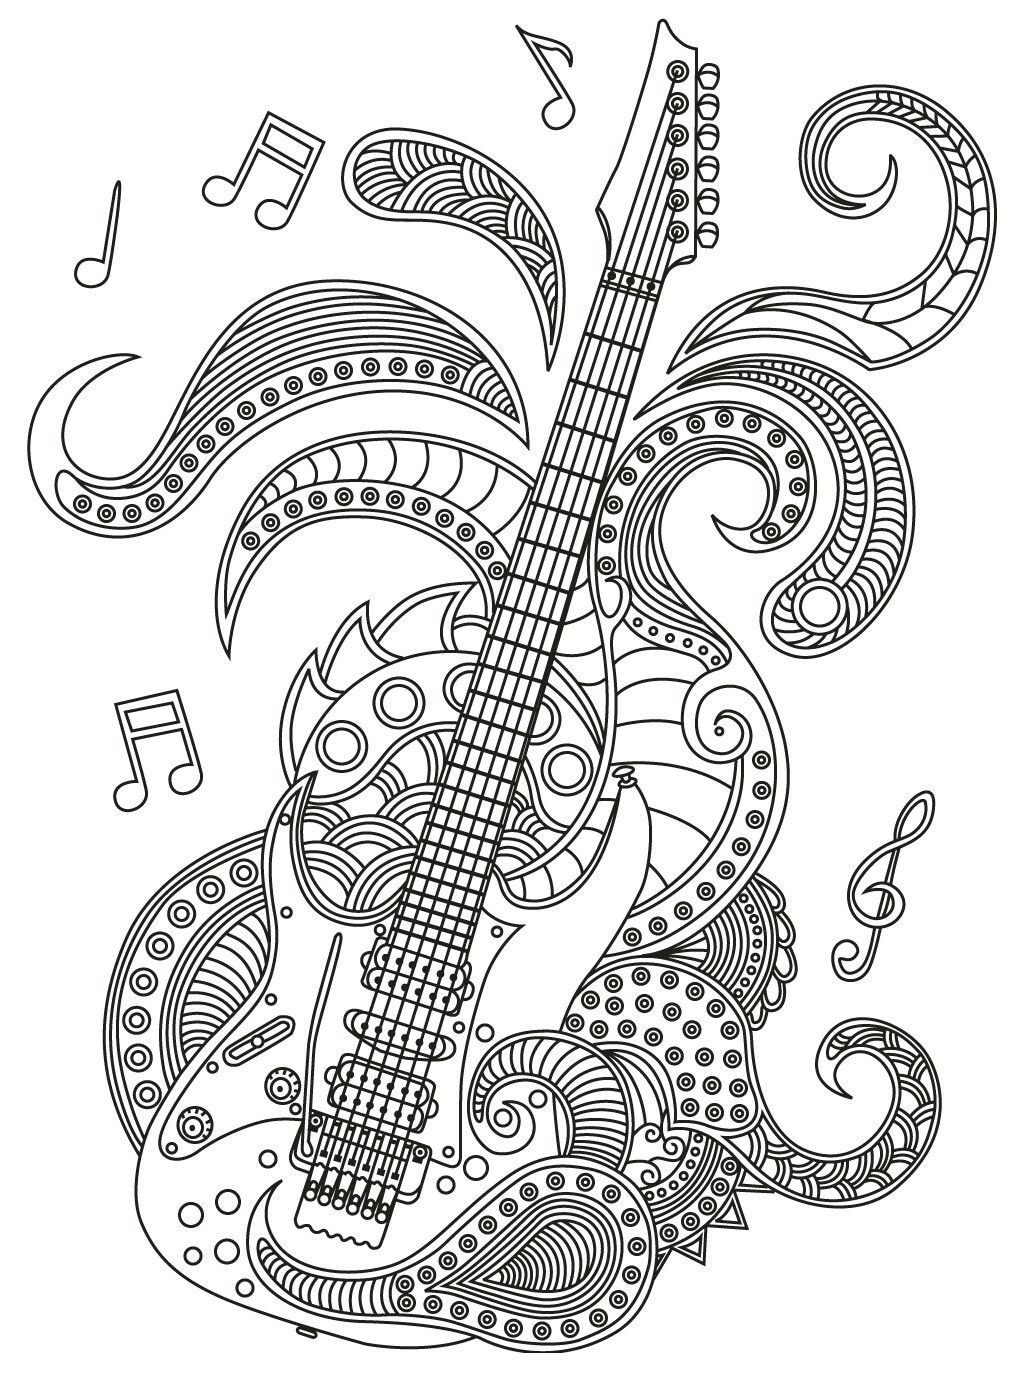 Guitar zendoodle | Coloring books, Coloring pages, Adult ...